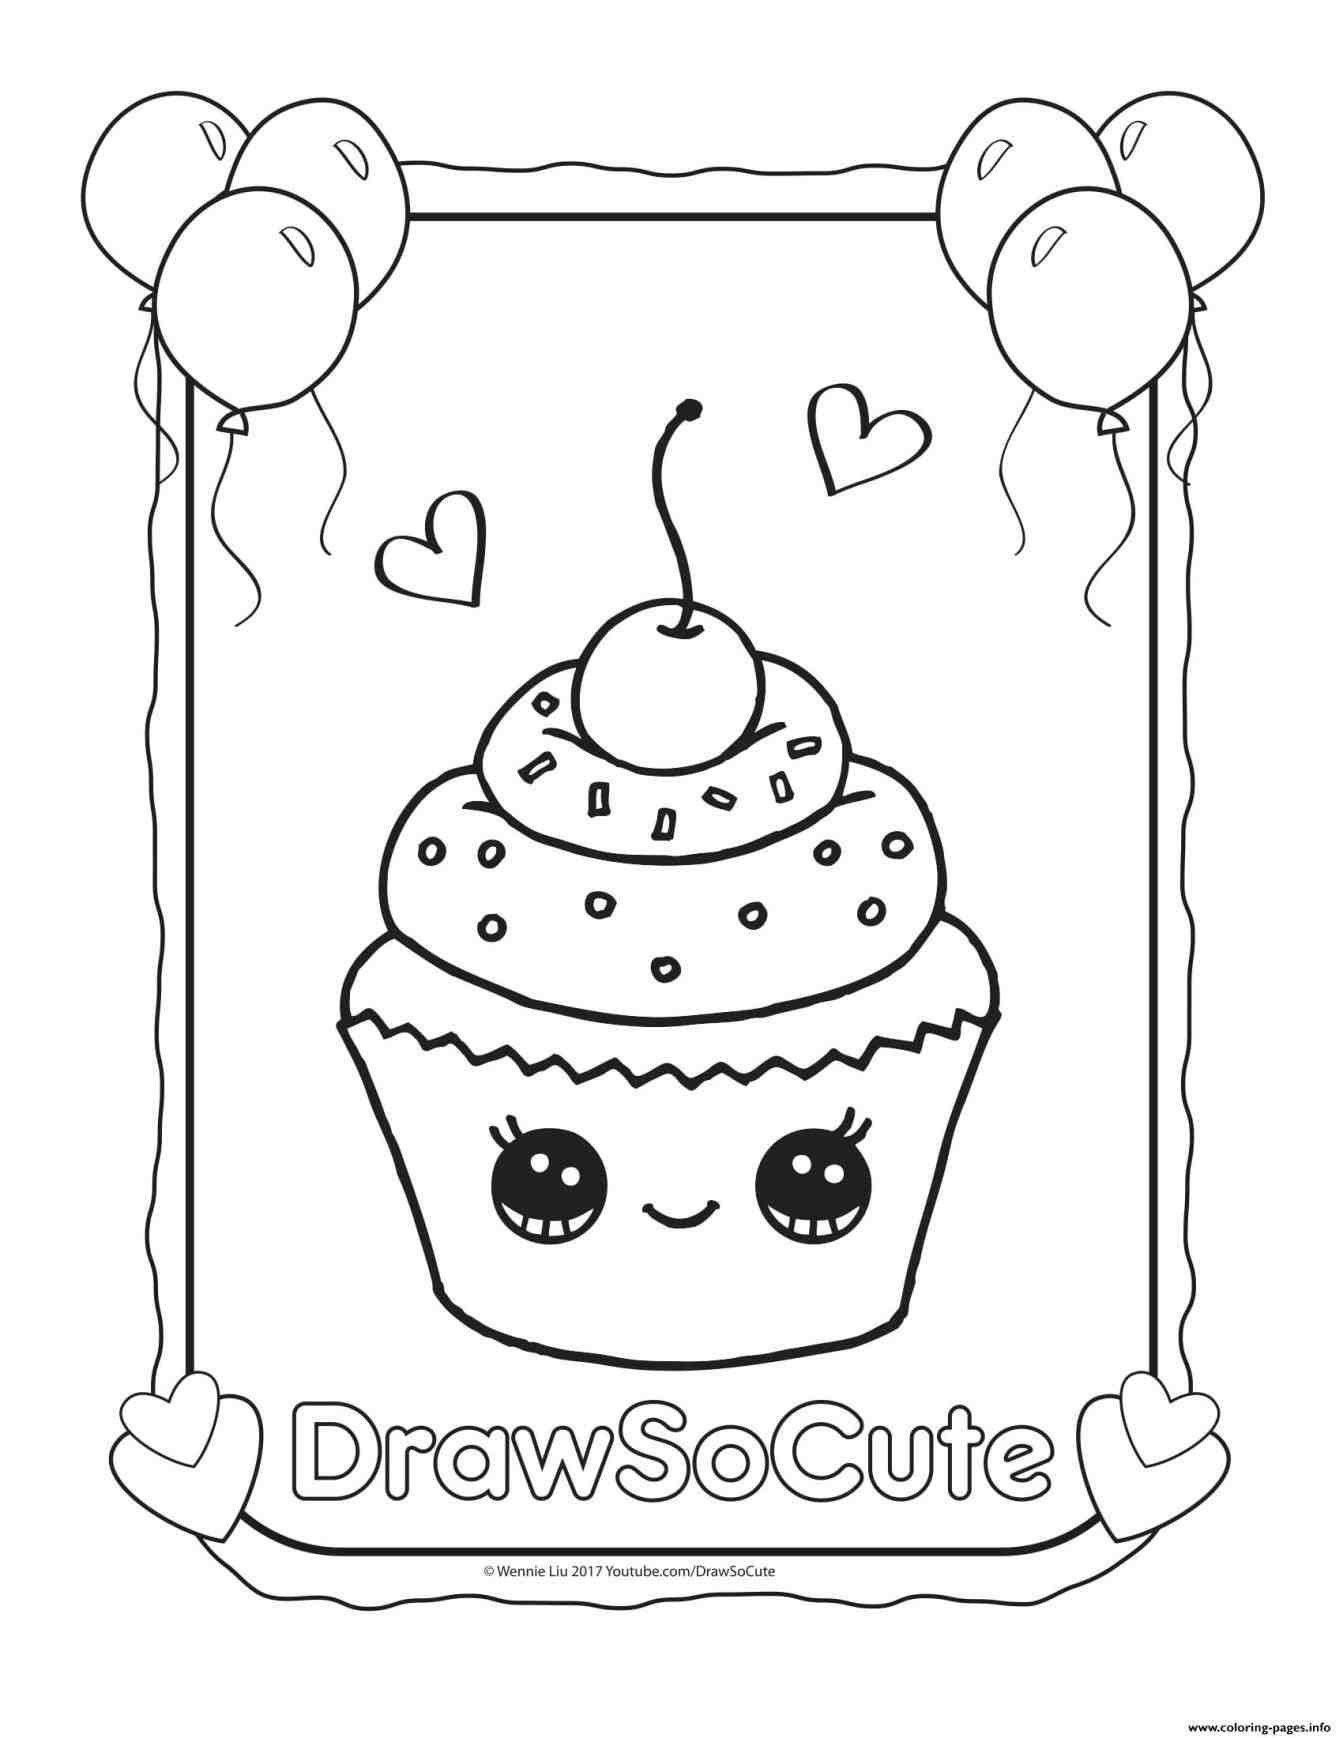 Cute Coloring Pages Food Excellent Image Of Starbucks Coloring Page Cute Coloring Pages Cupcake Coloring Pages Food Coloring Pages